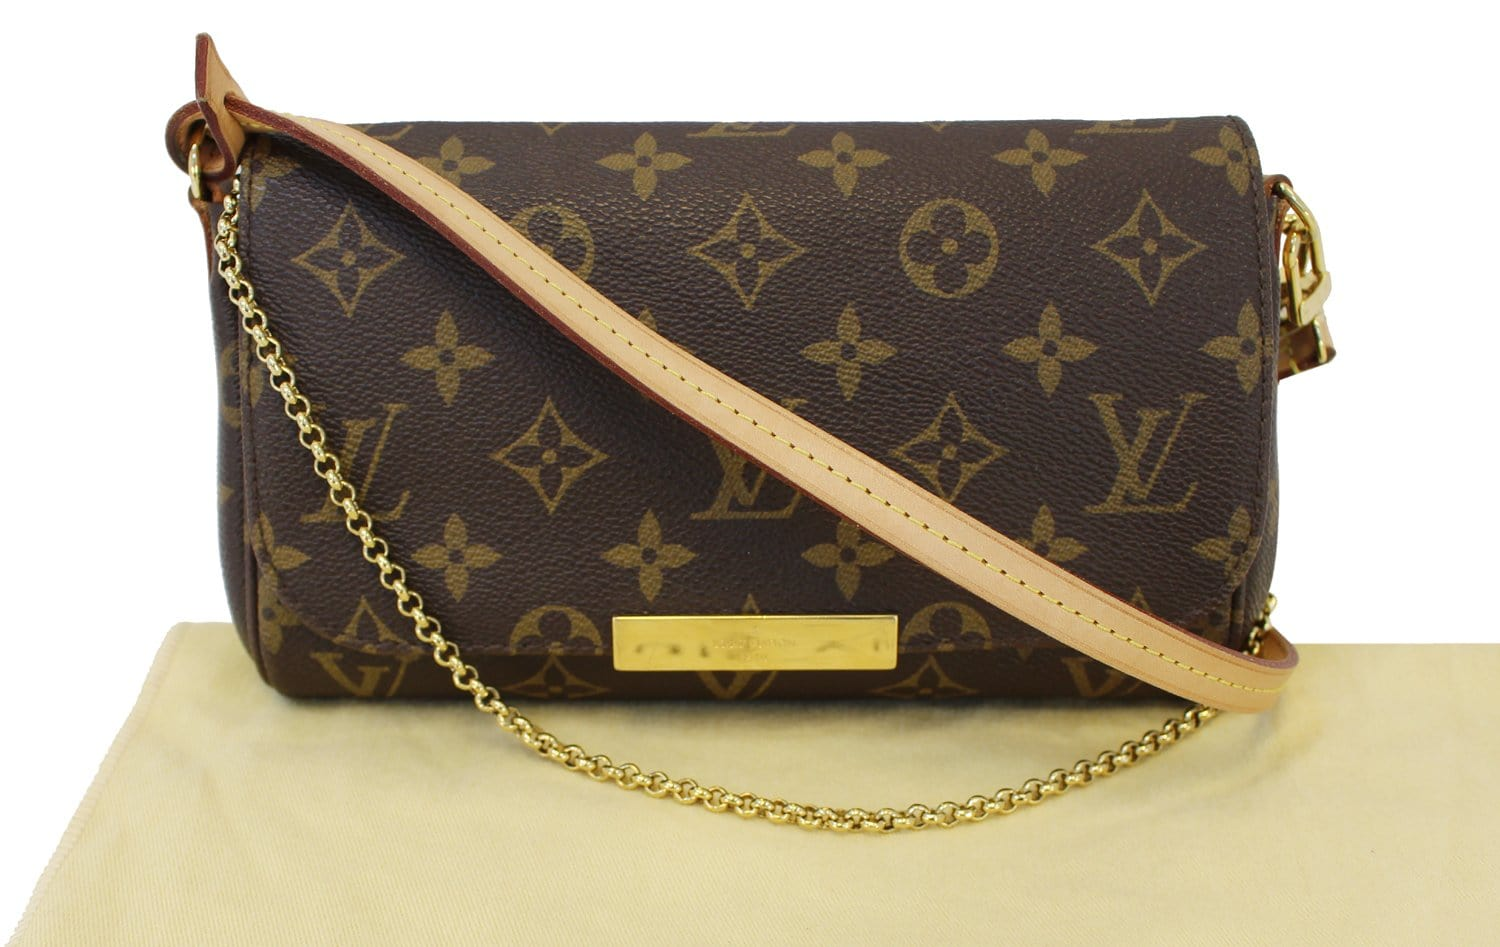 dec0cc72ac76 Authentic LOUIS VUITTON Monogram Canvas Favorite PM Crossbody Bag TT1469